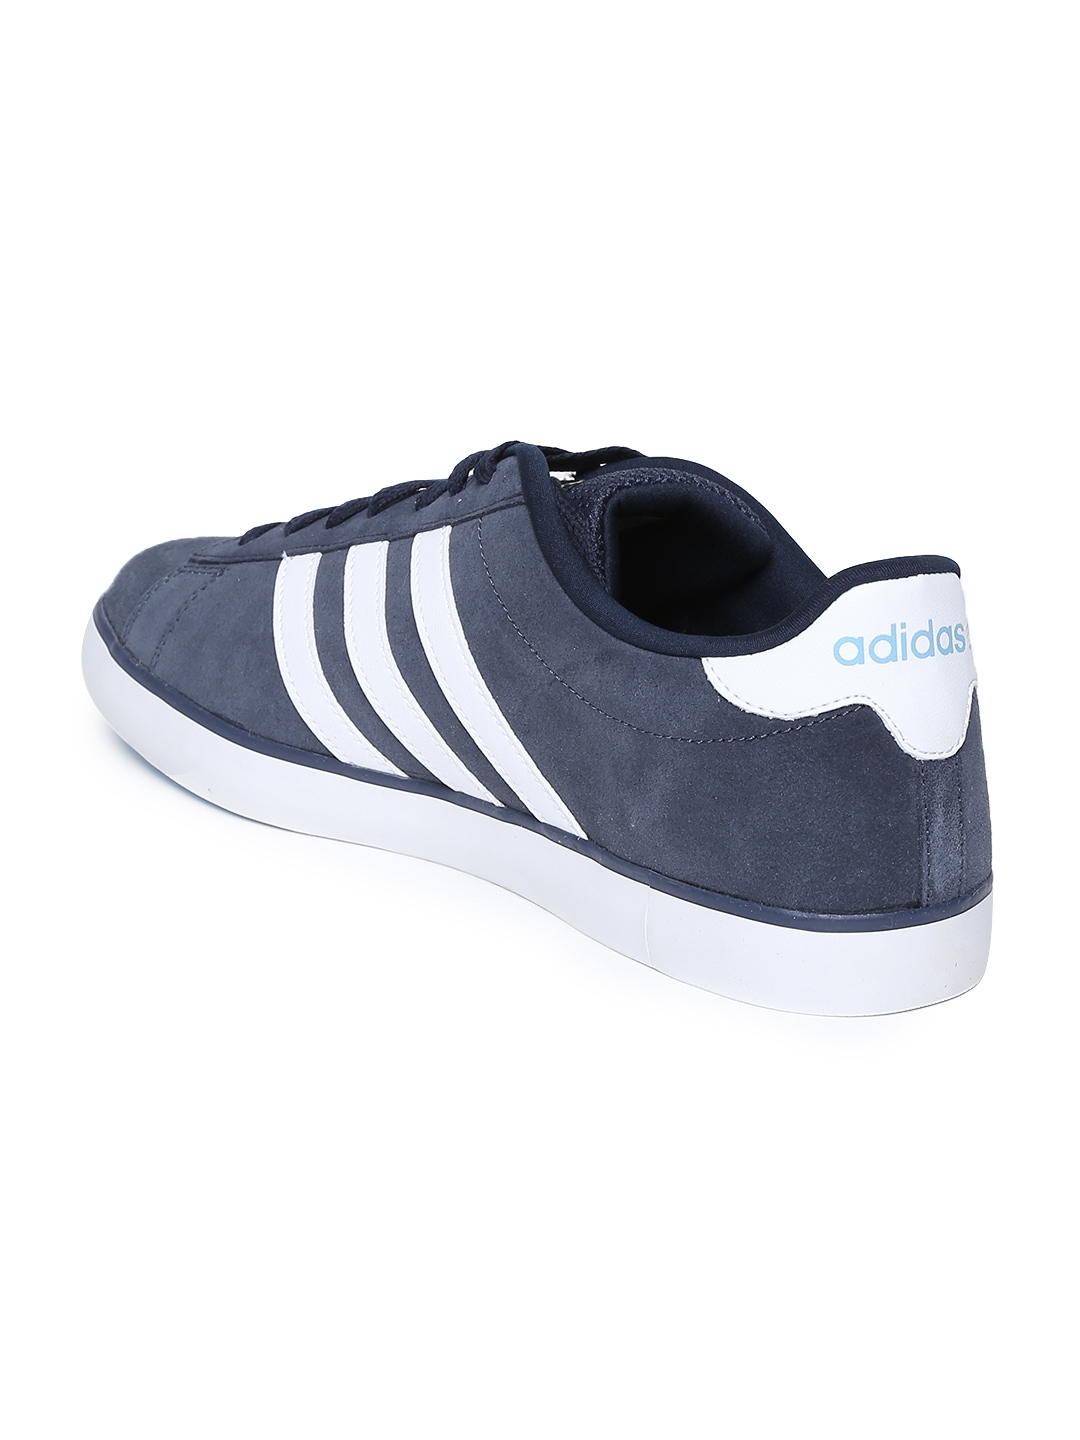 Adidas Neo Derby Vulc Navy Blue Sneakers